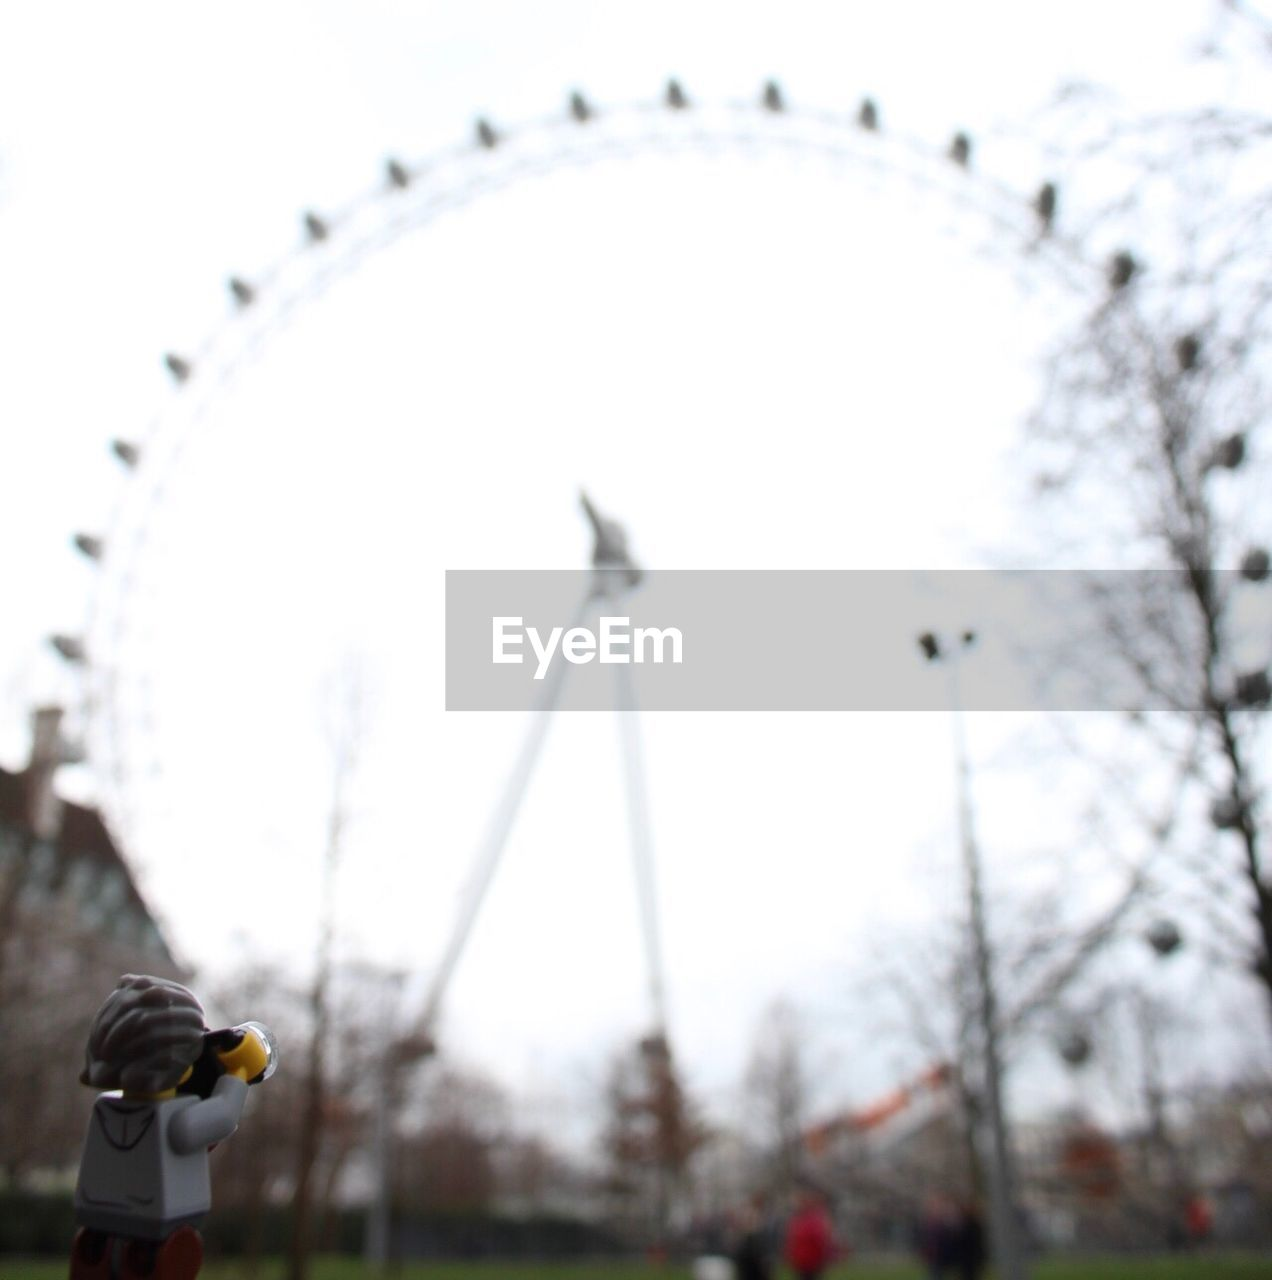 ferris wheel, no people, focus on foreground, sky, close-up, day, outdoors, city, hour hand, clock